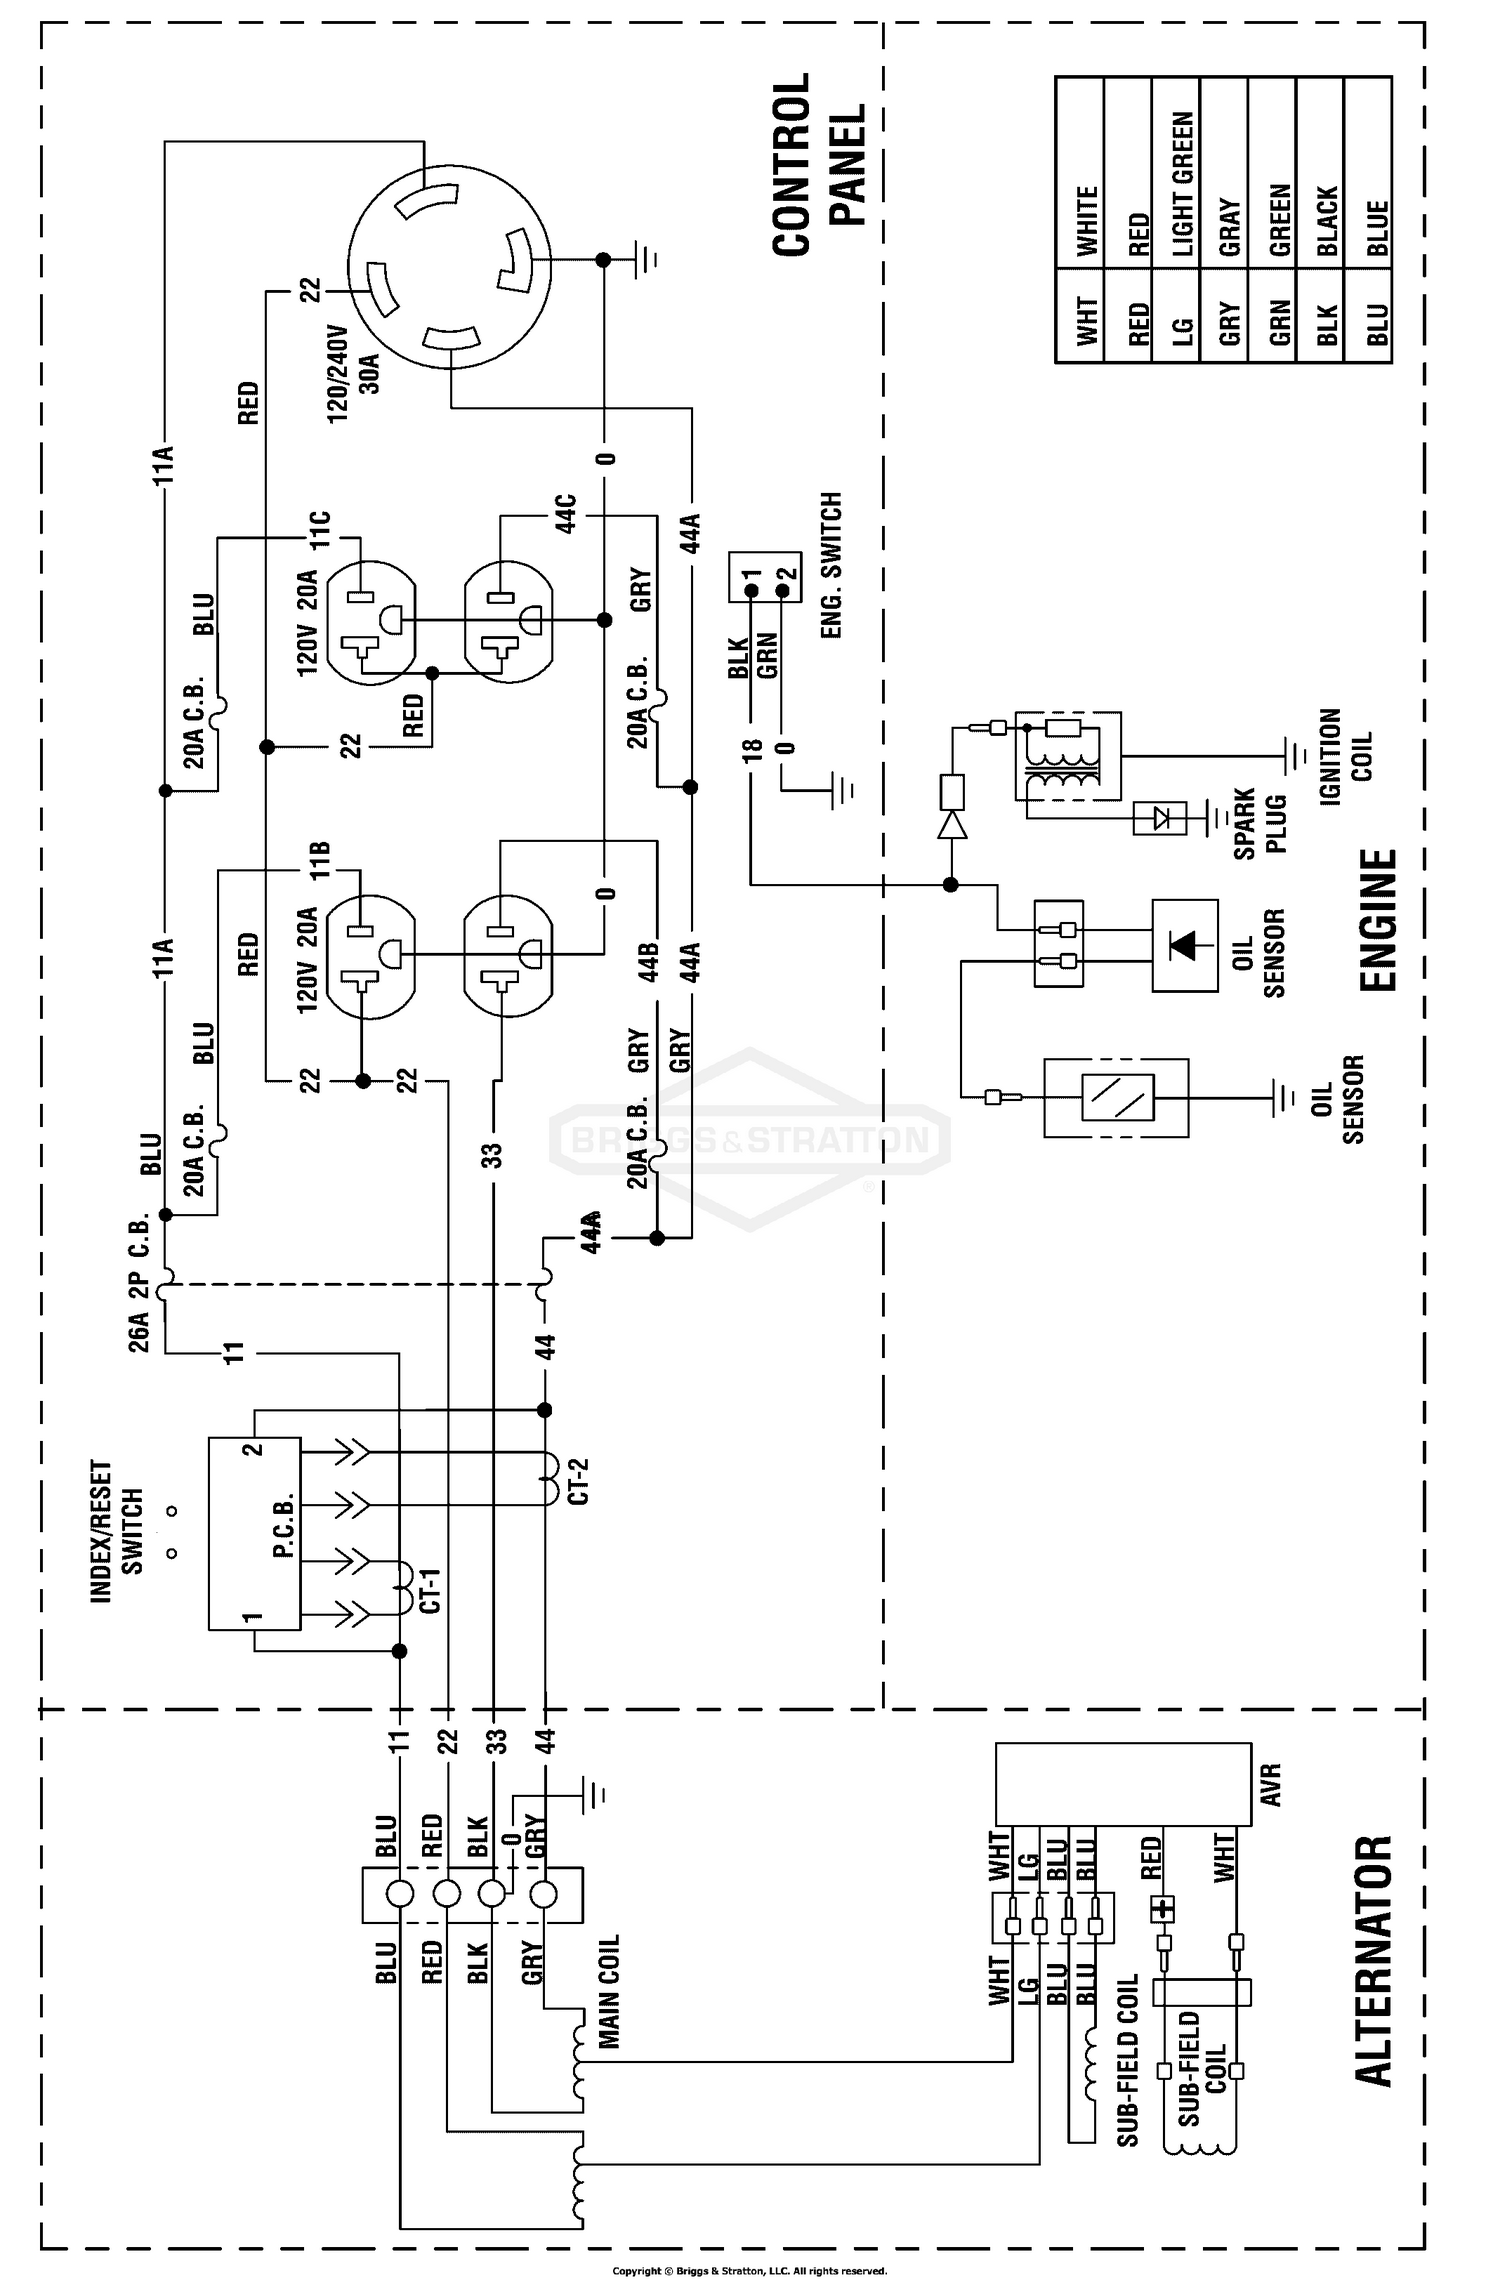 Briggs Amp Stratton Power Products Del 26072017021729 030592b 00 And Generator Wiring Diagram Schematic 319319ws